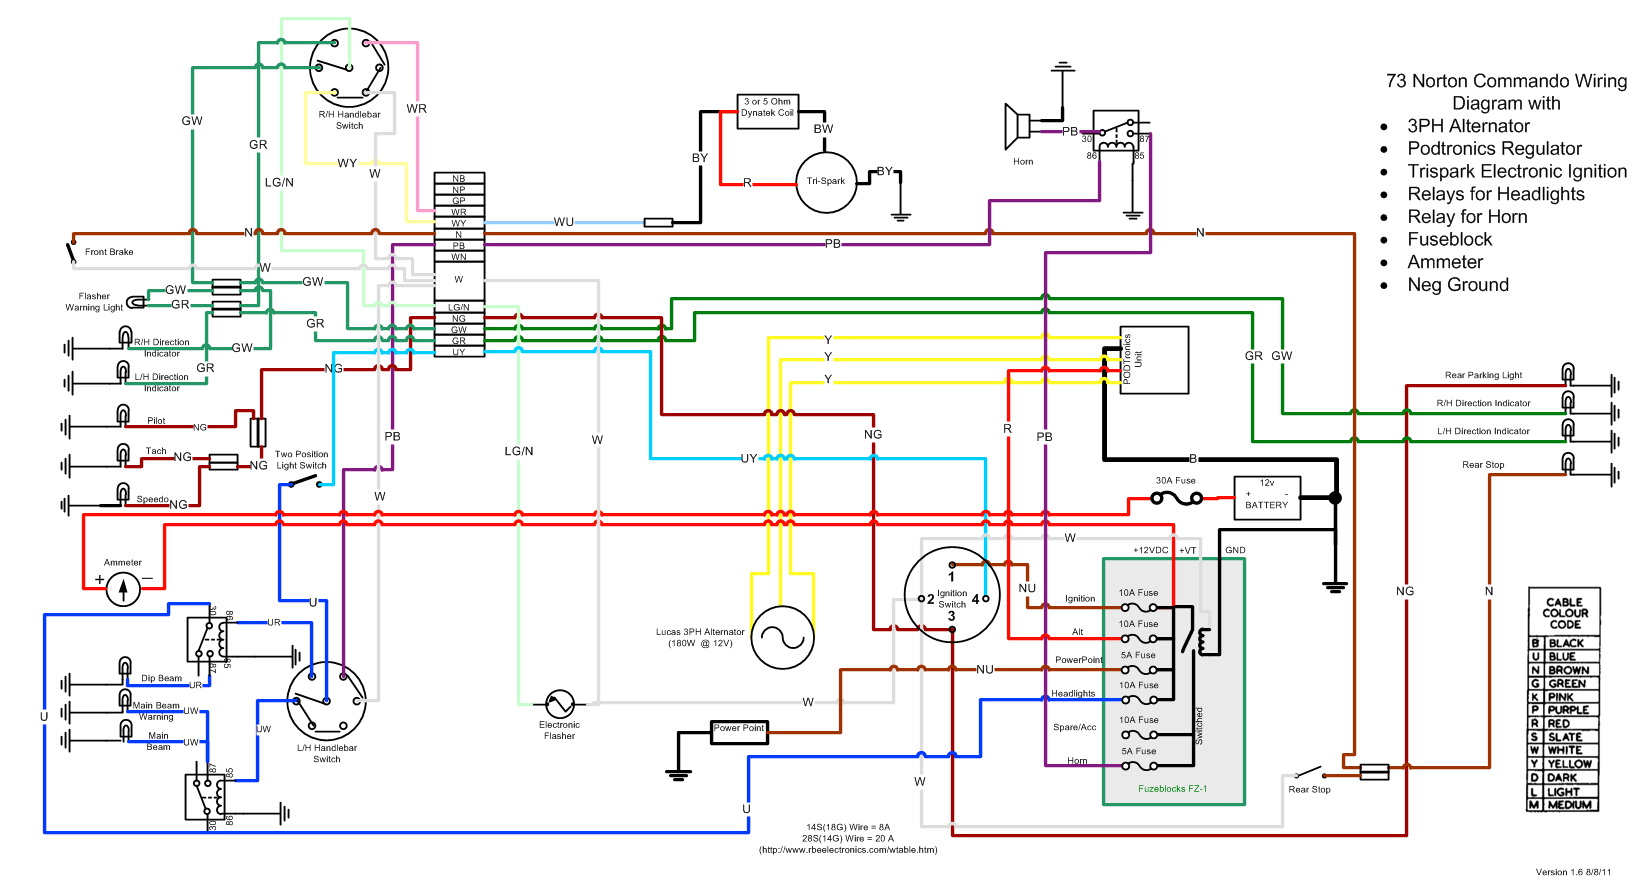 73wiringdiagram?resize\\\\\\\\\\\\\\\\\\\\\\\\\\\\\\\\\\\\\\\=665%2C359 wiring diagram for international dt4300,diagram \u2022 indy500 co  at gsmx.co